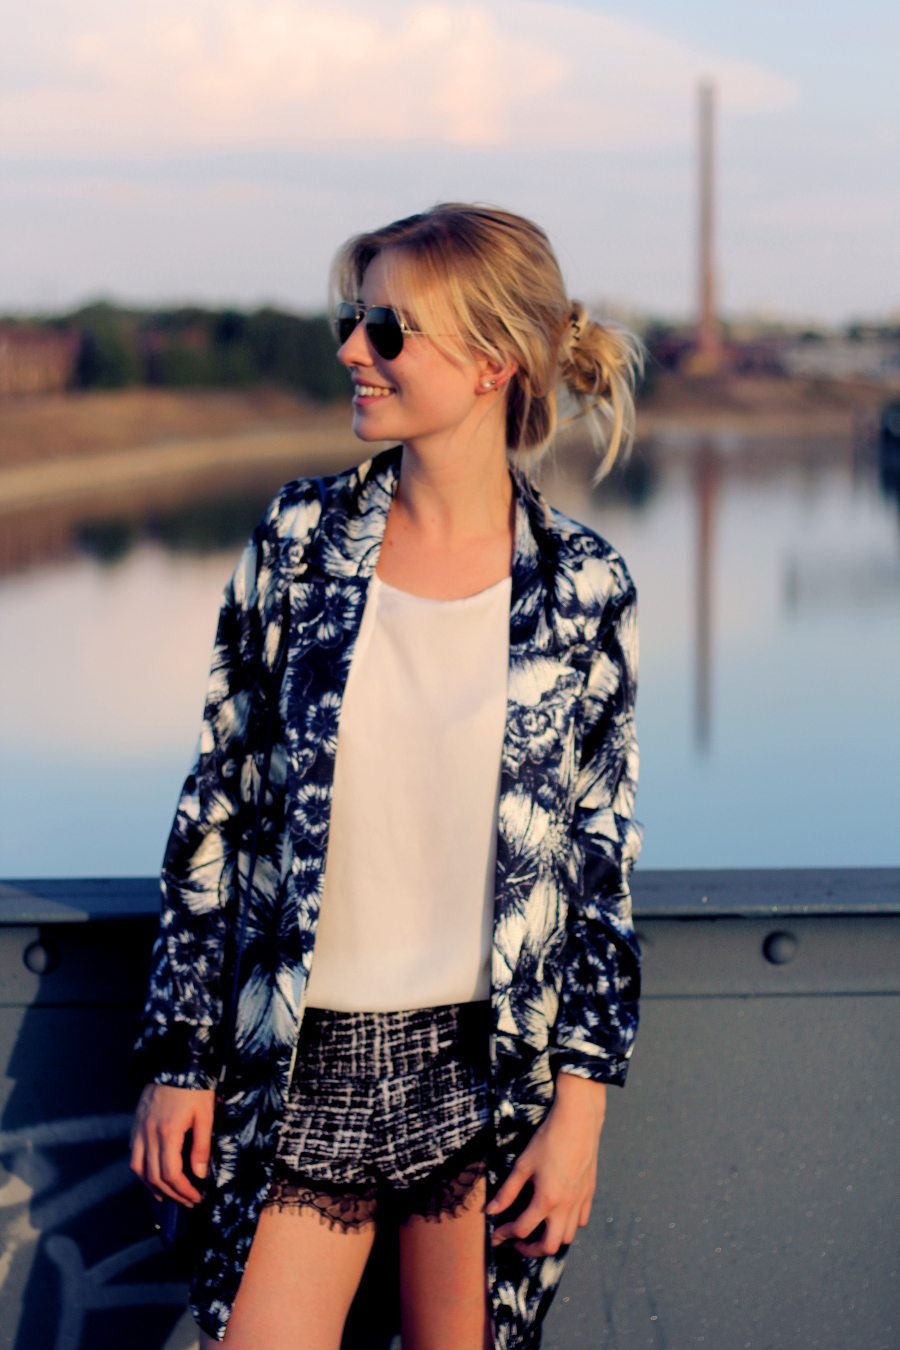 outfit-blonde-sunlight-sunset-rayban-coat-flower-print-shorts-missguided-glases